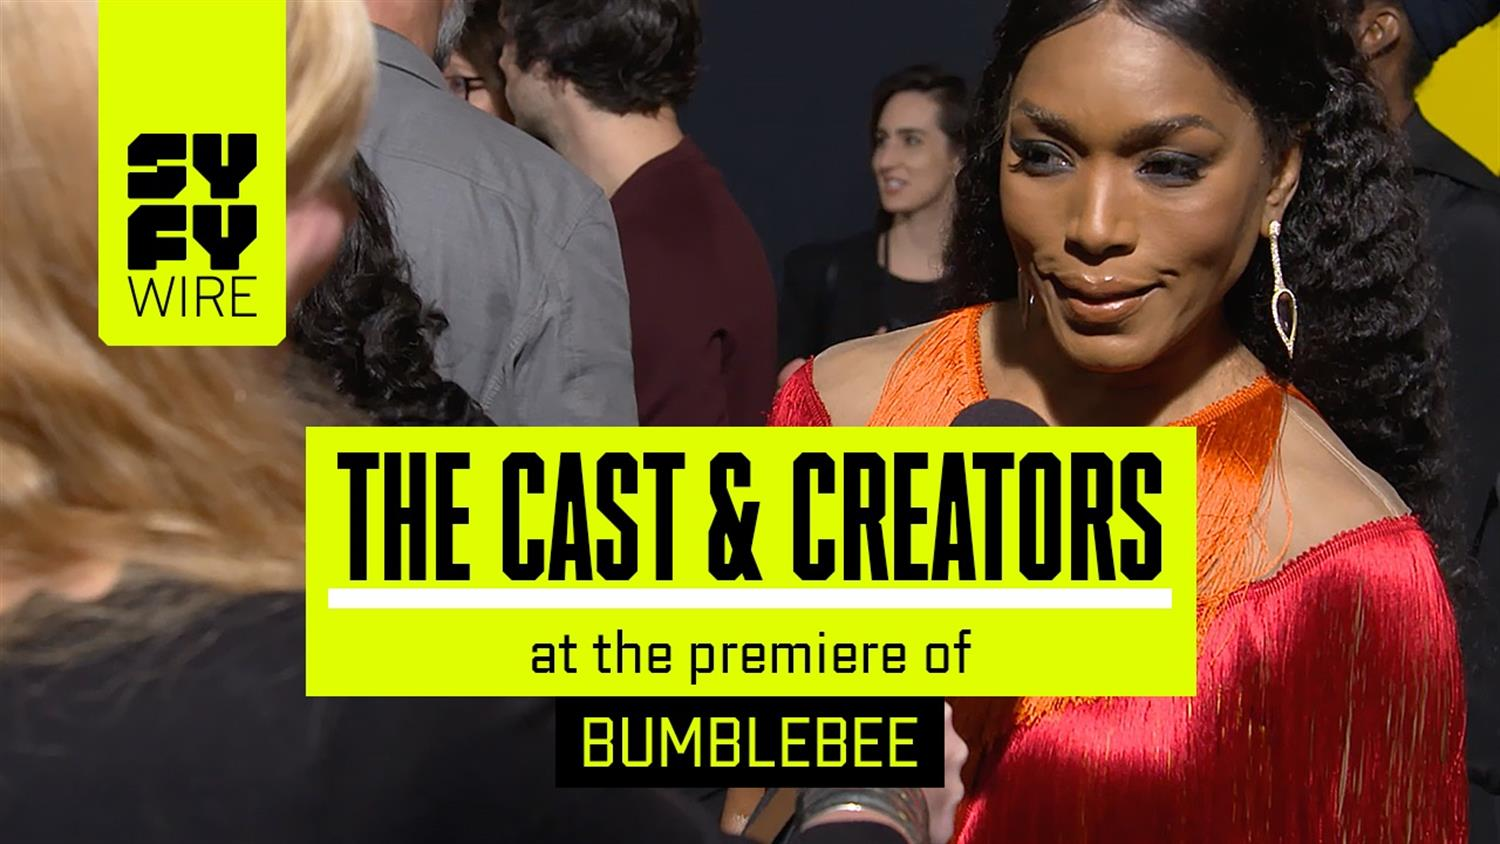 Bumblebee Premiere: Will Optimus Prime Get A Movie?